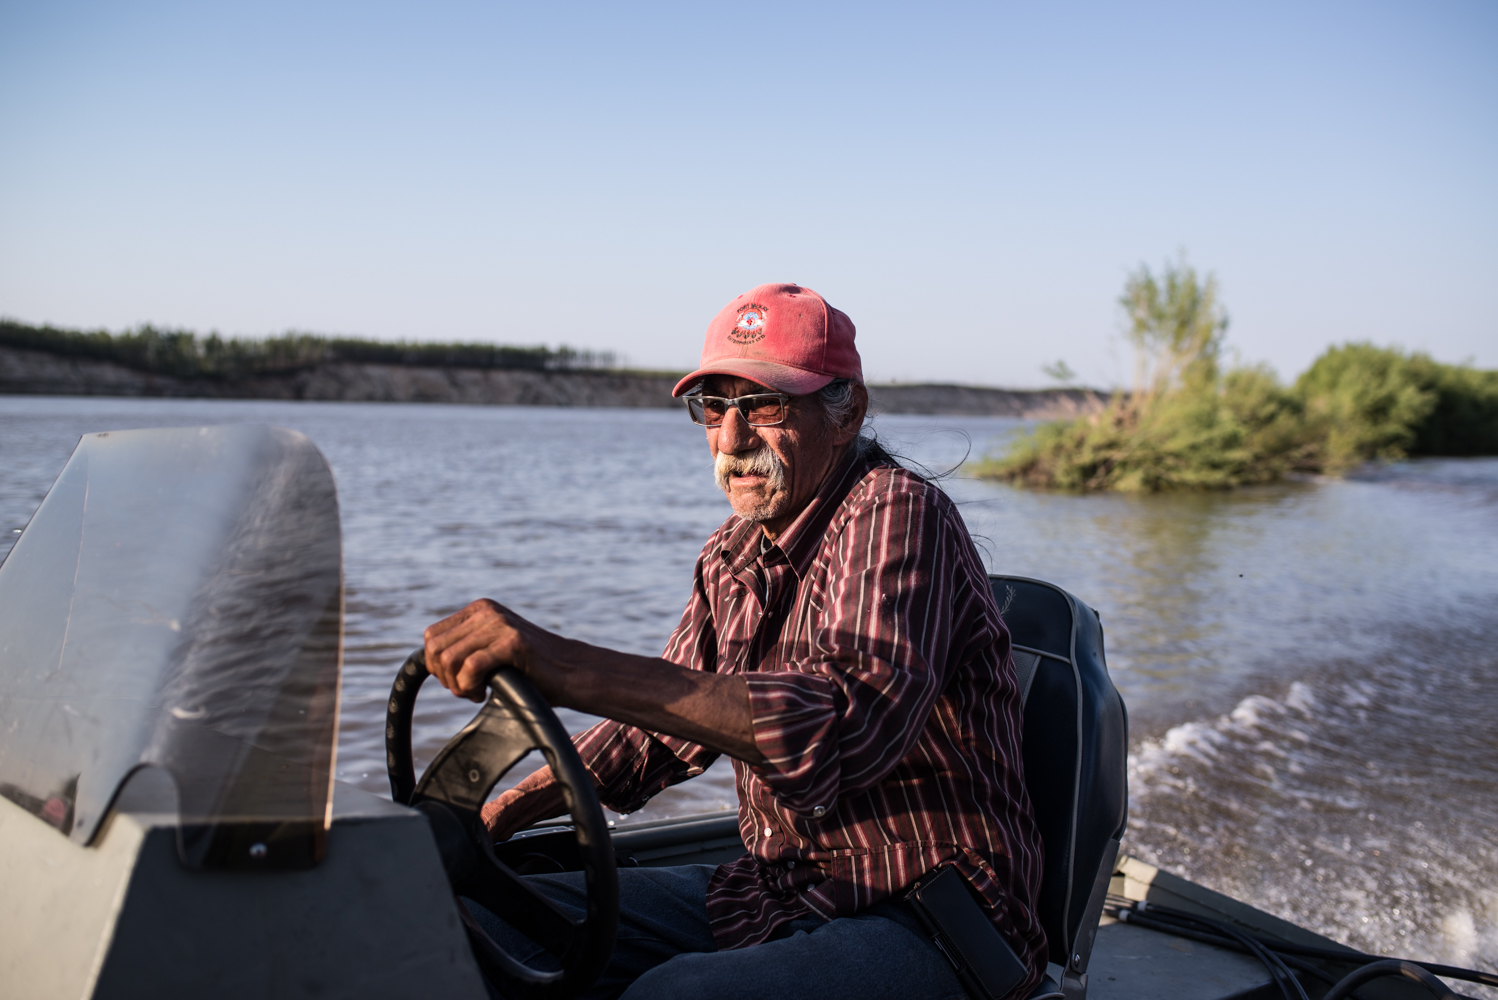 Roy Ladouceur is a hunter, trapper, and river guide who lives at Poplar Point, July 2017.